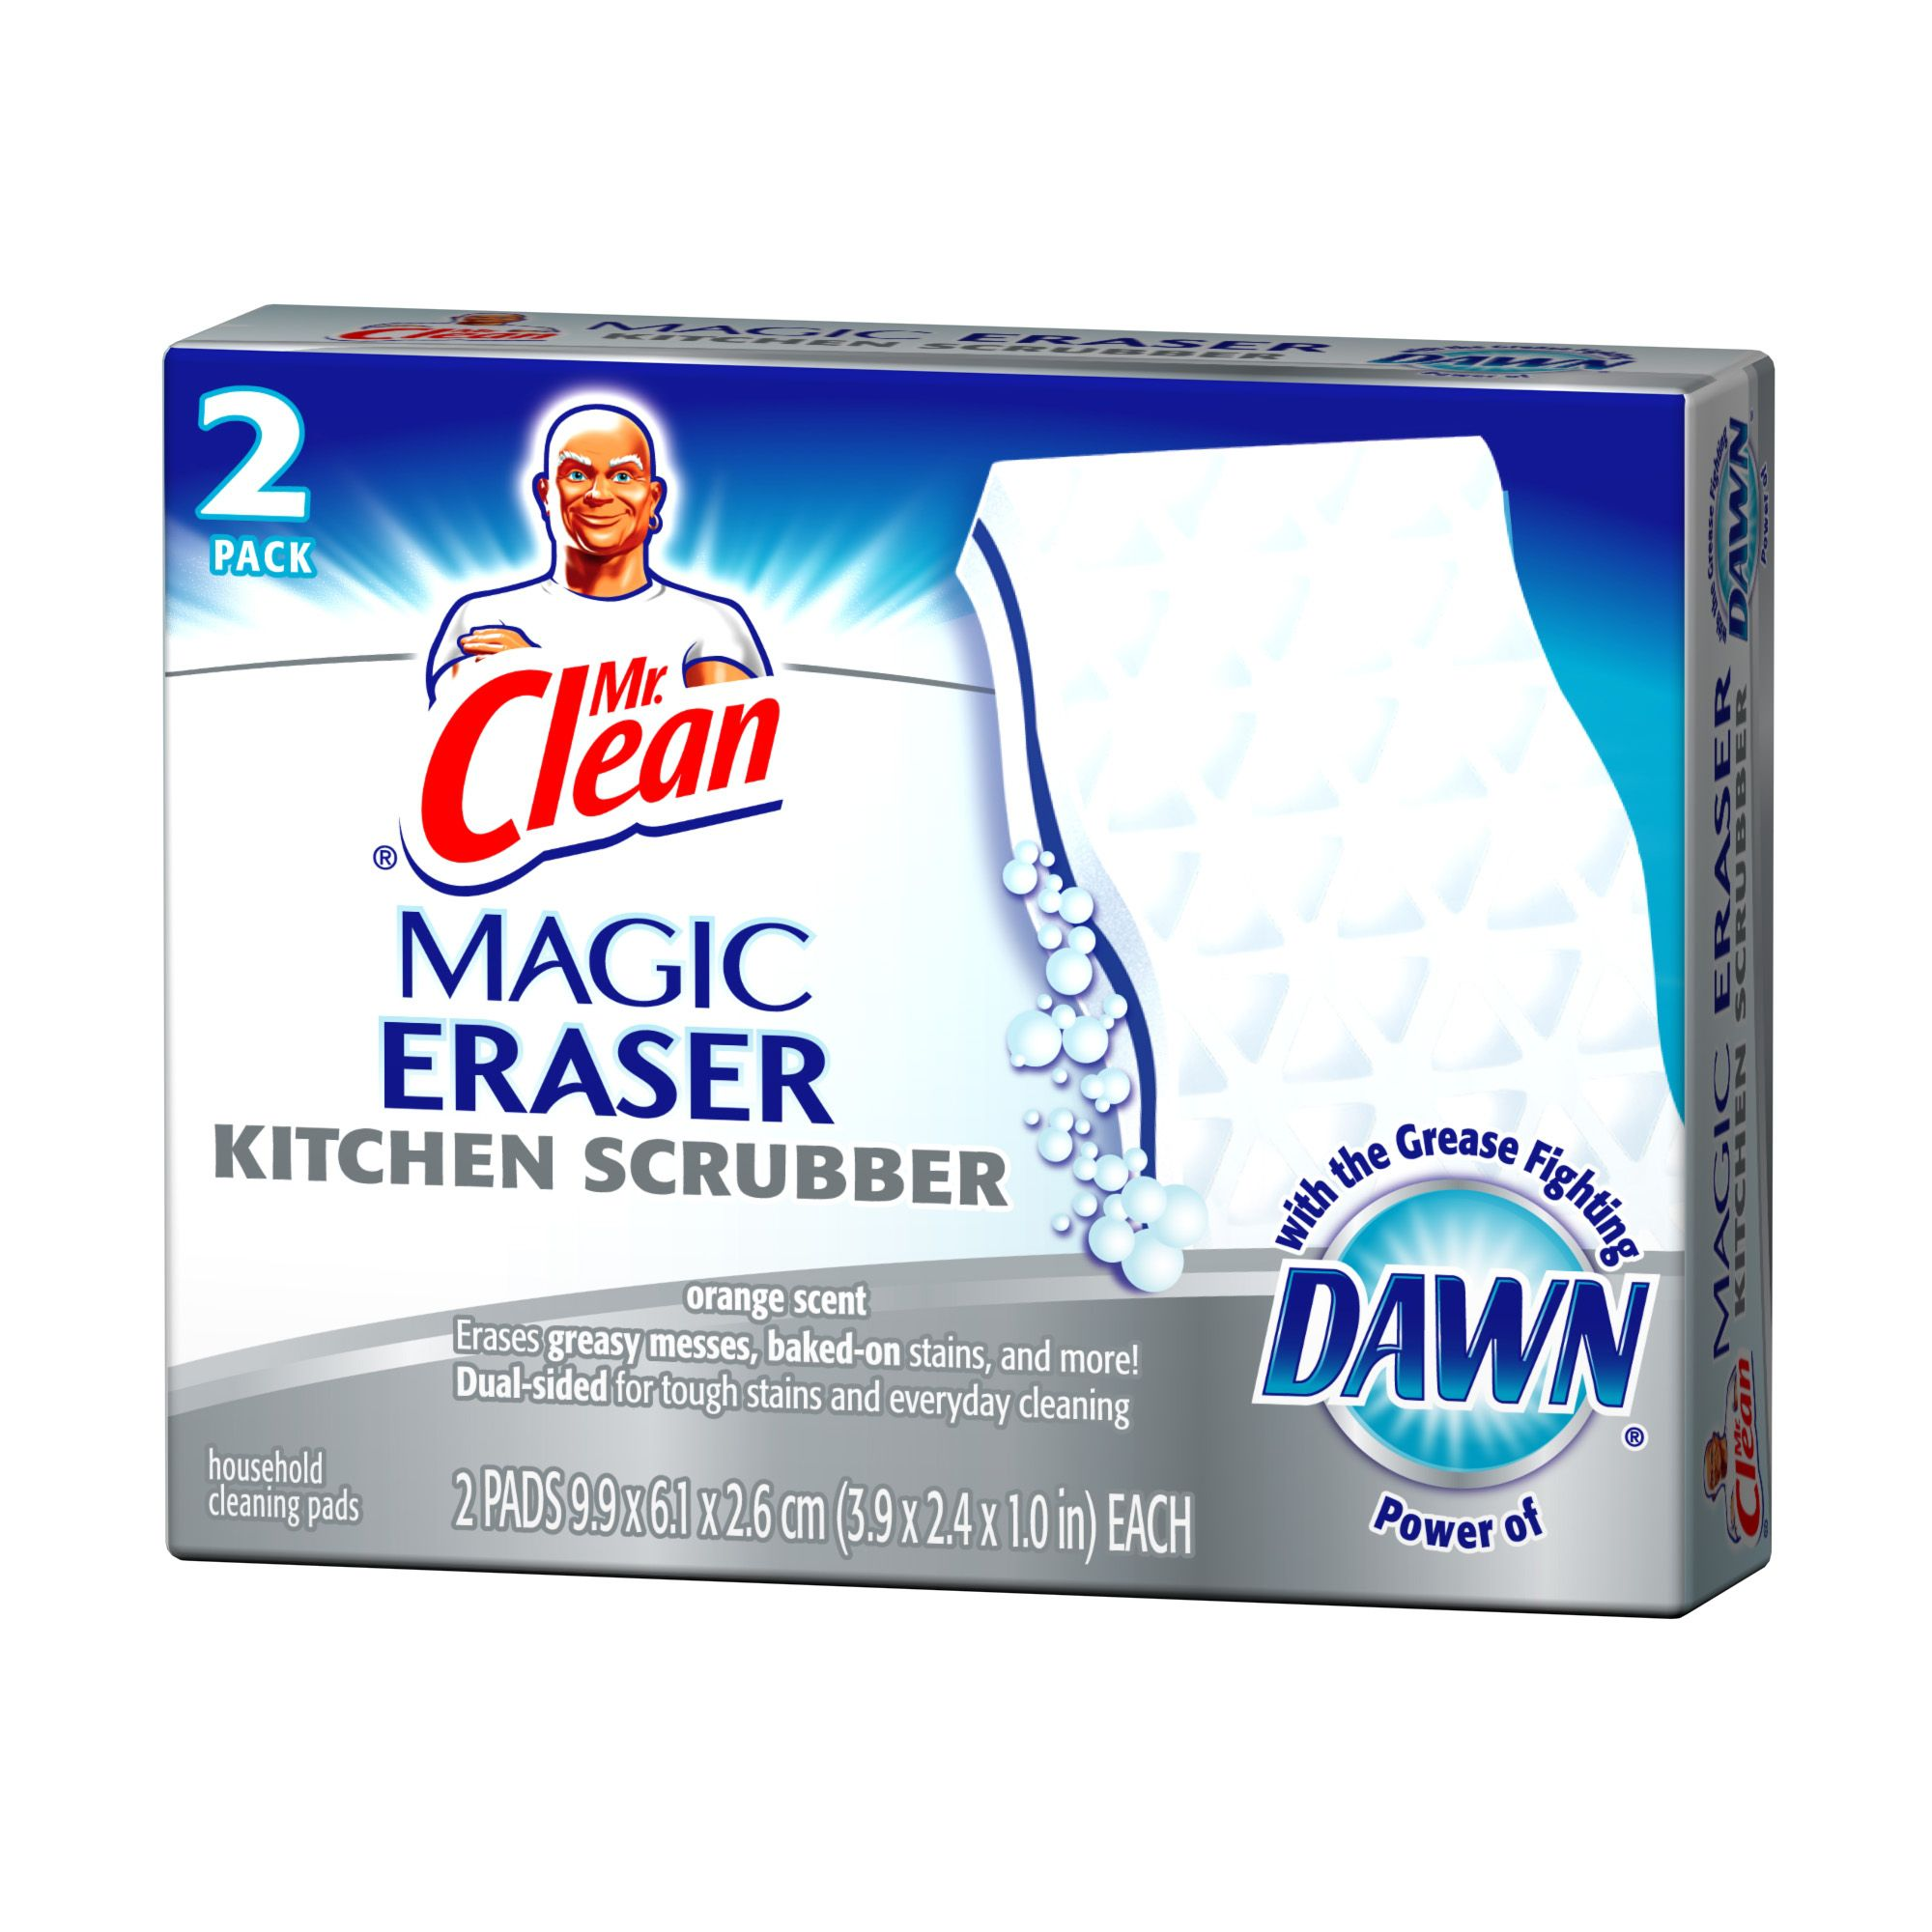 mr clean magic eraser review. Black Bedroom Furniture Sets. Home Design Ideas